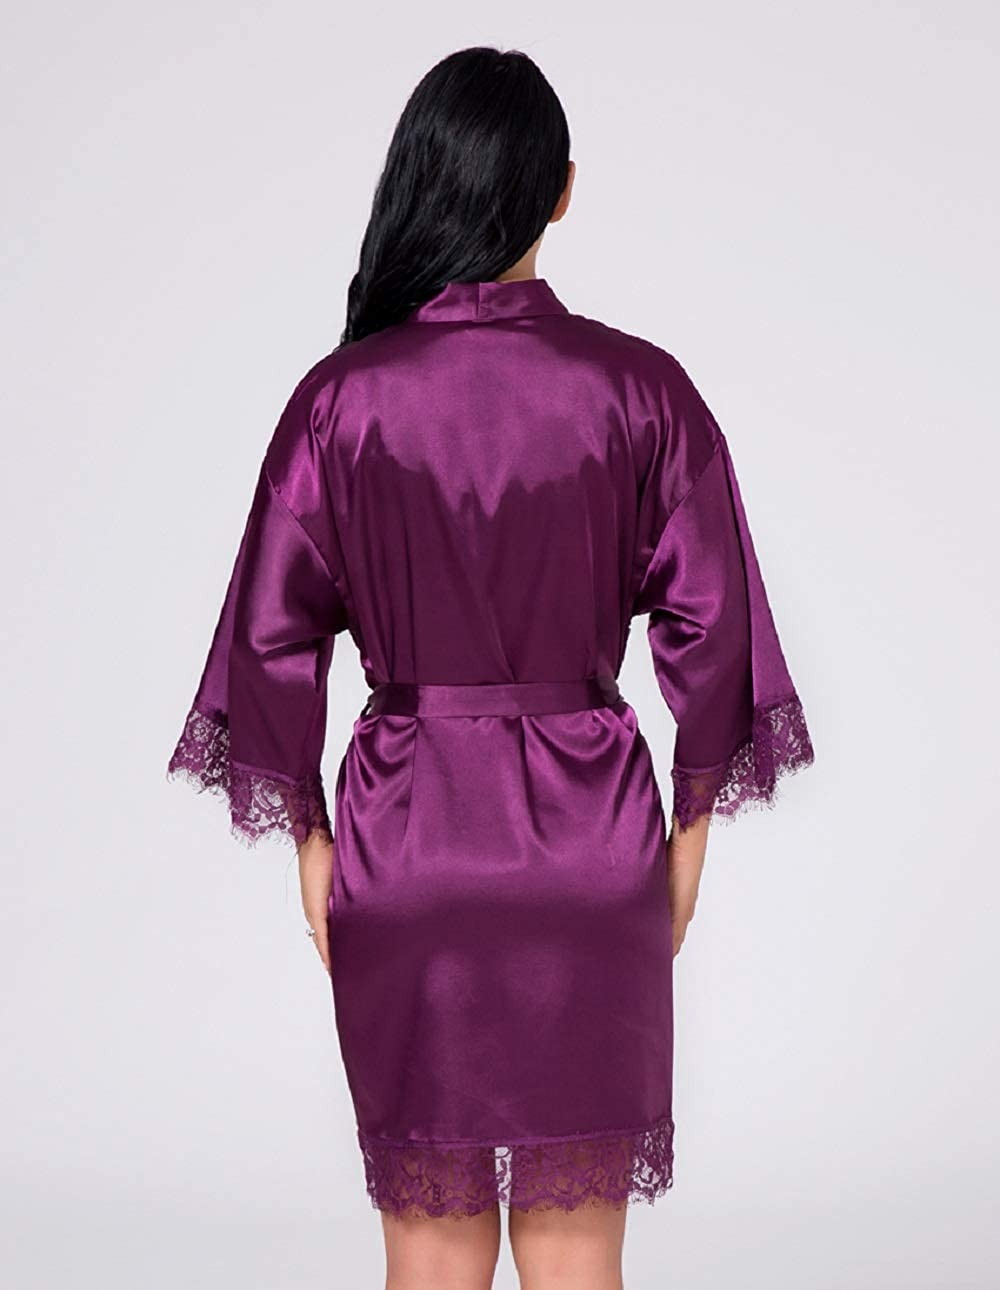 Womens Kimono Robes Satin Nightdress Pure Colour Short Style with Oblique V-Neck Lace Gowns Bathrobes Nightwear